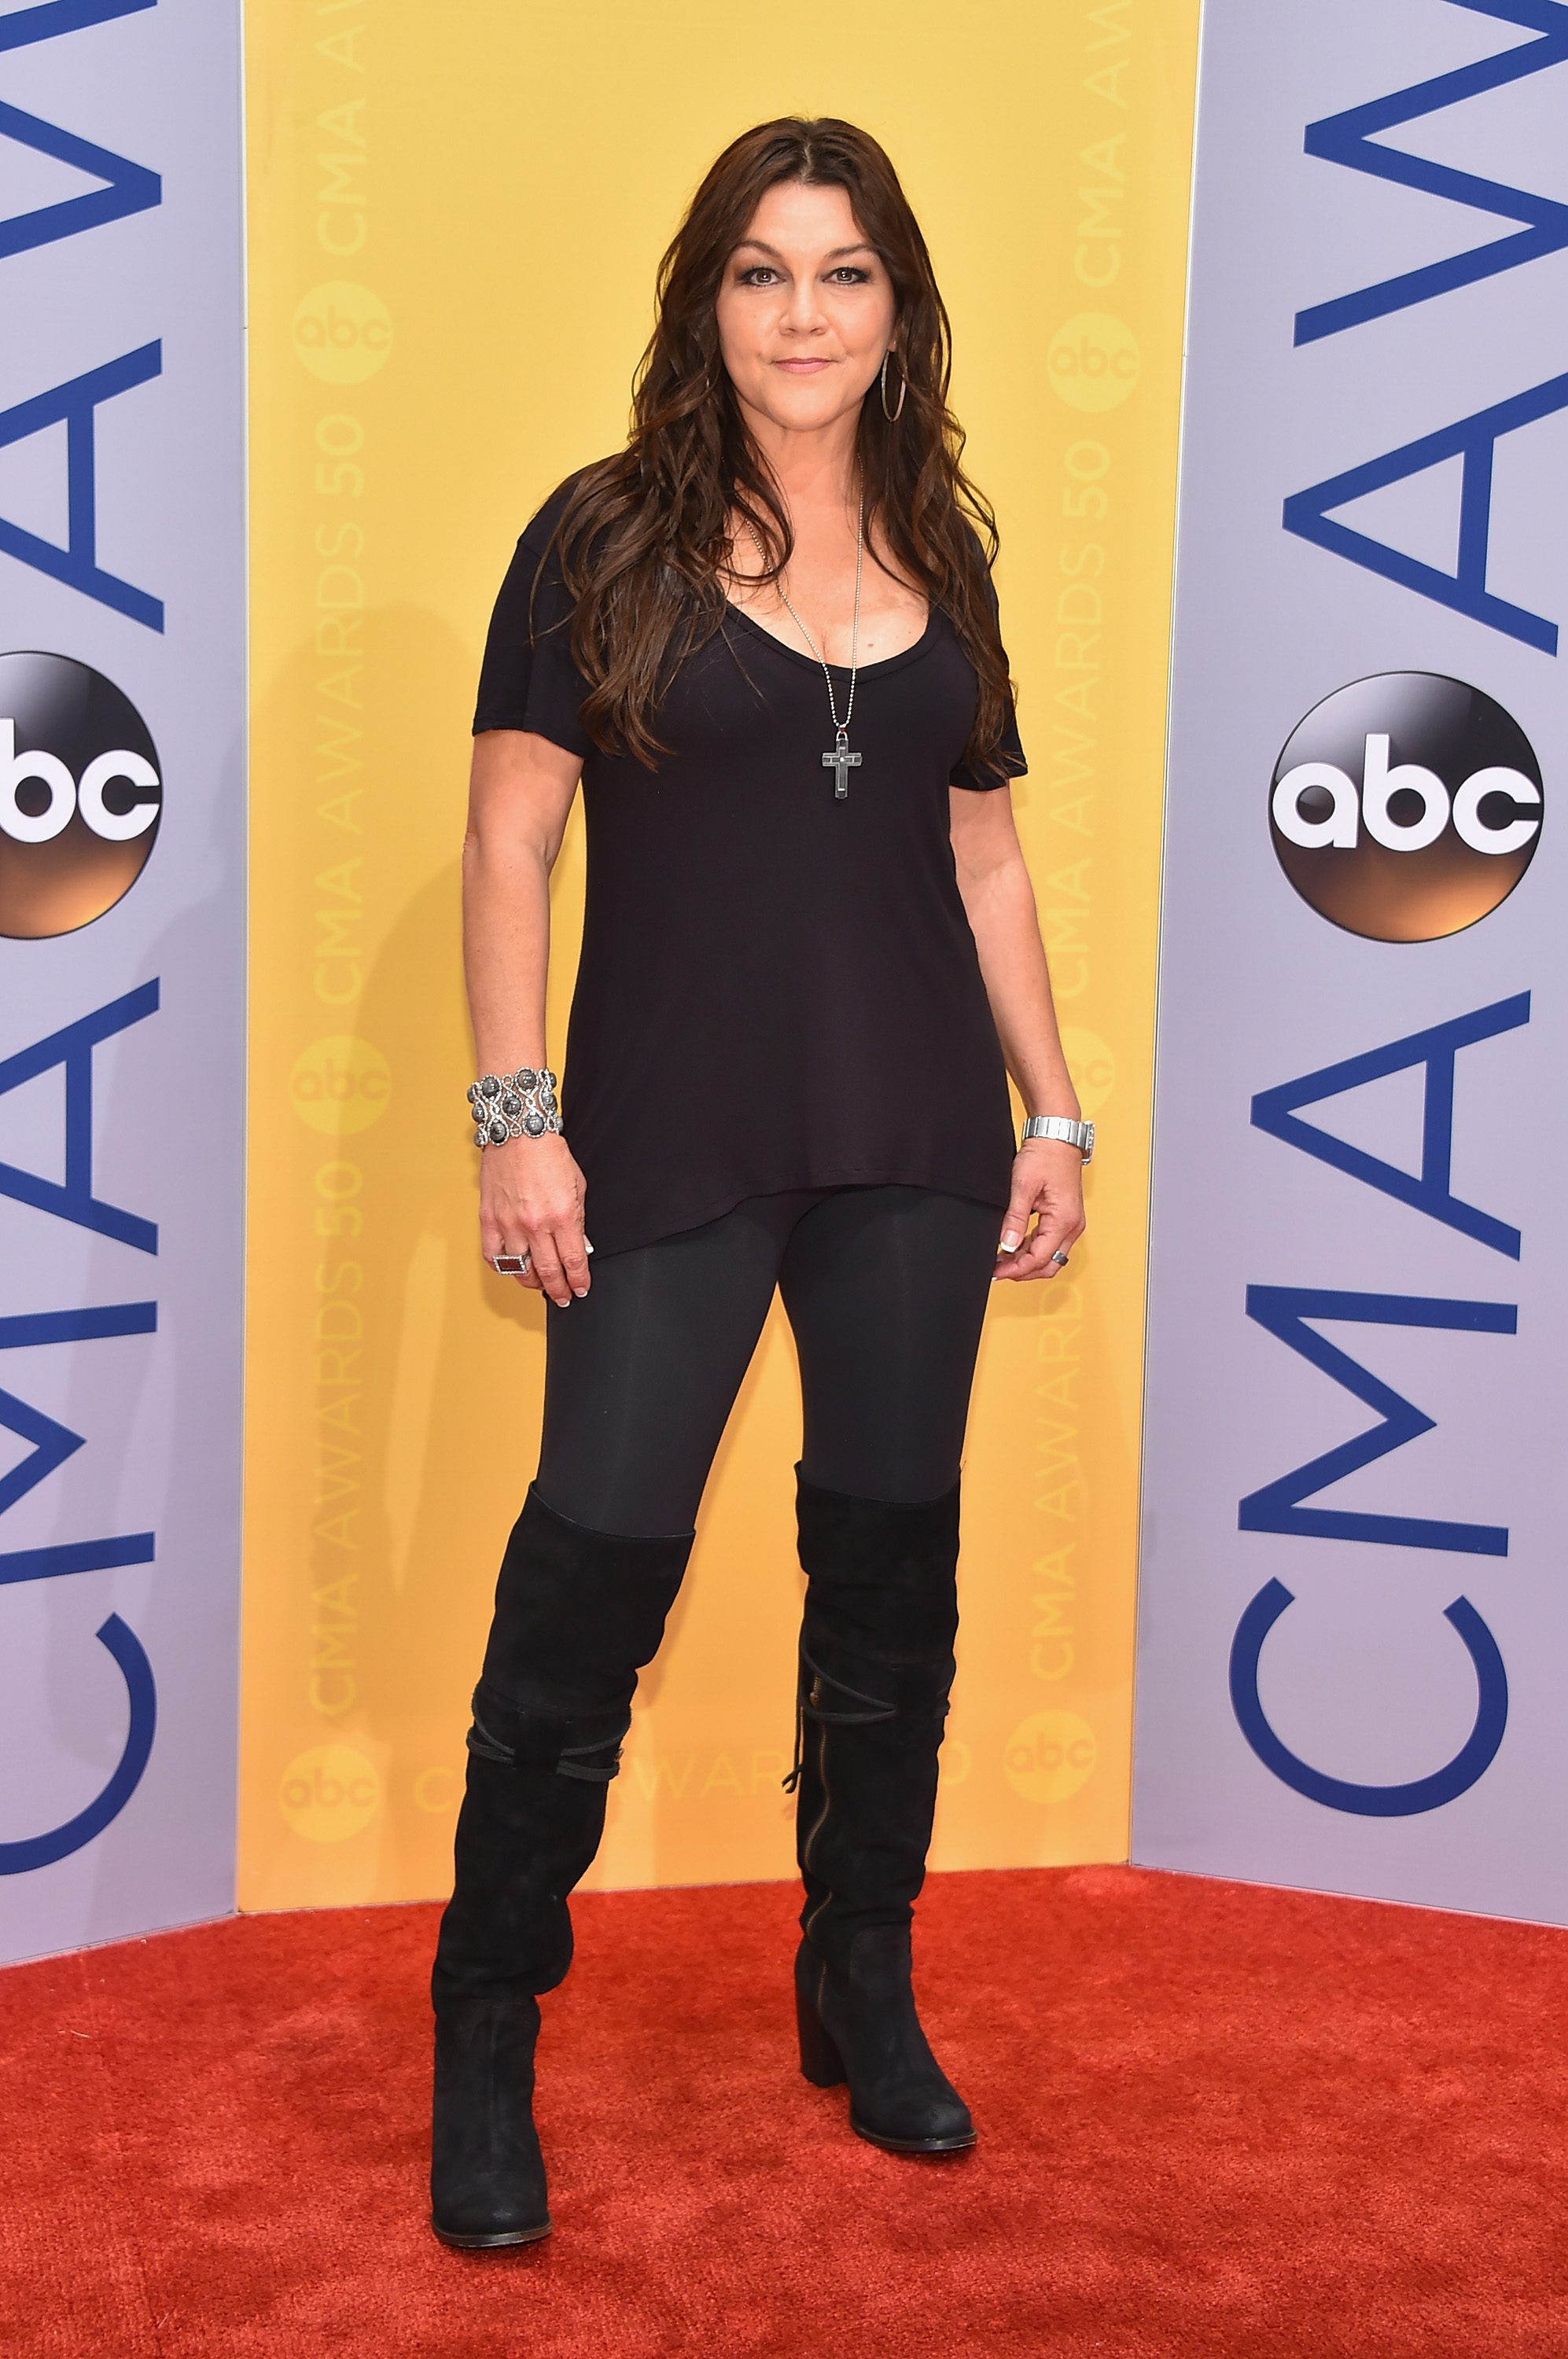 Musical artist Gretchen Wilson attends the 50th annual CMA Awards at the Bridgestone Arena on November 2, 2016 in Nashville, Tennessee.